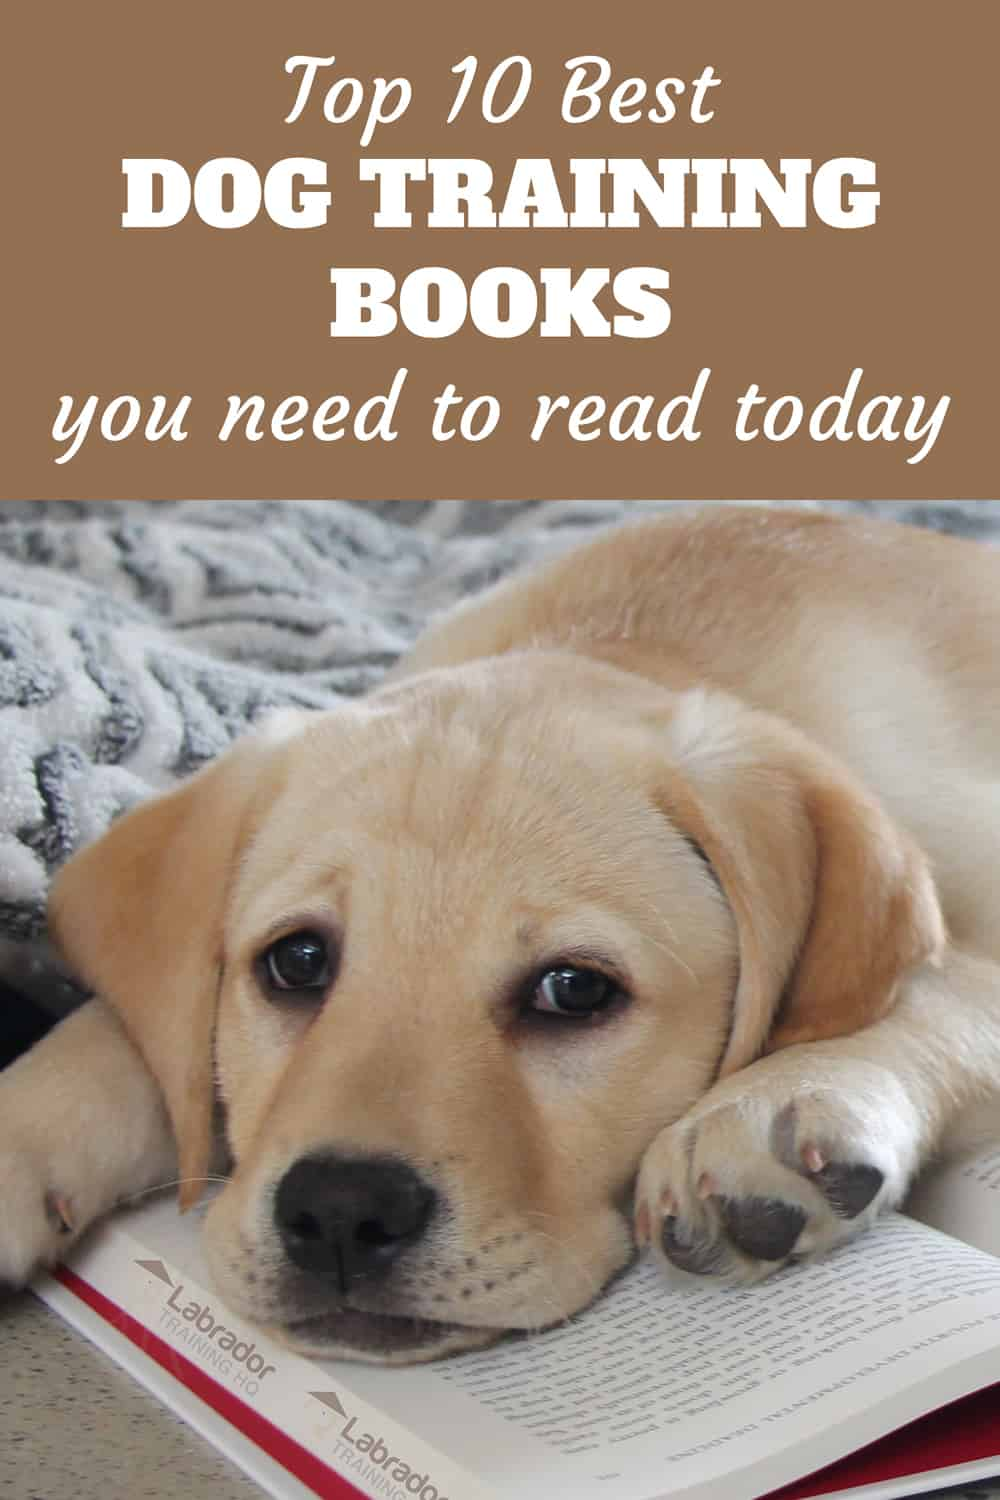 top 10 best dog training books you need to read today - yellow lab puppy lying on open book